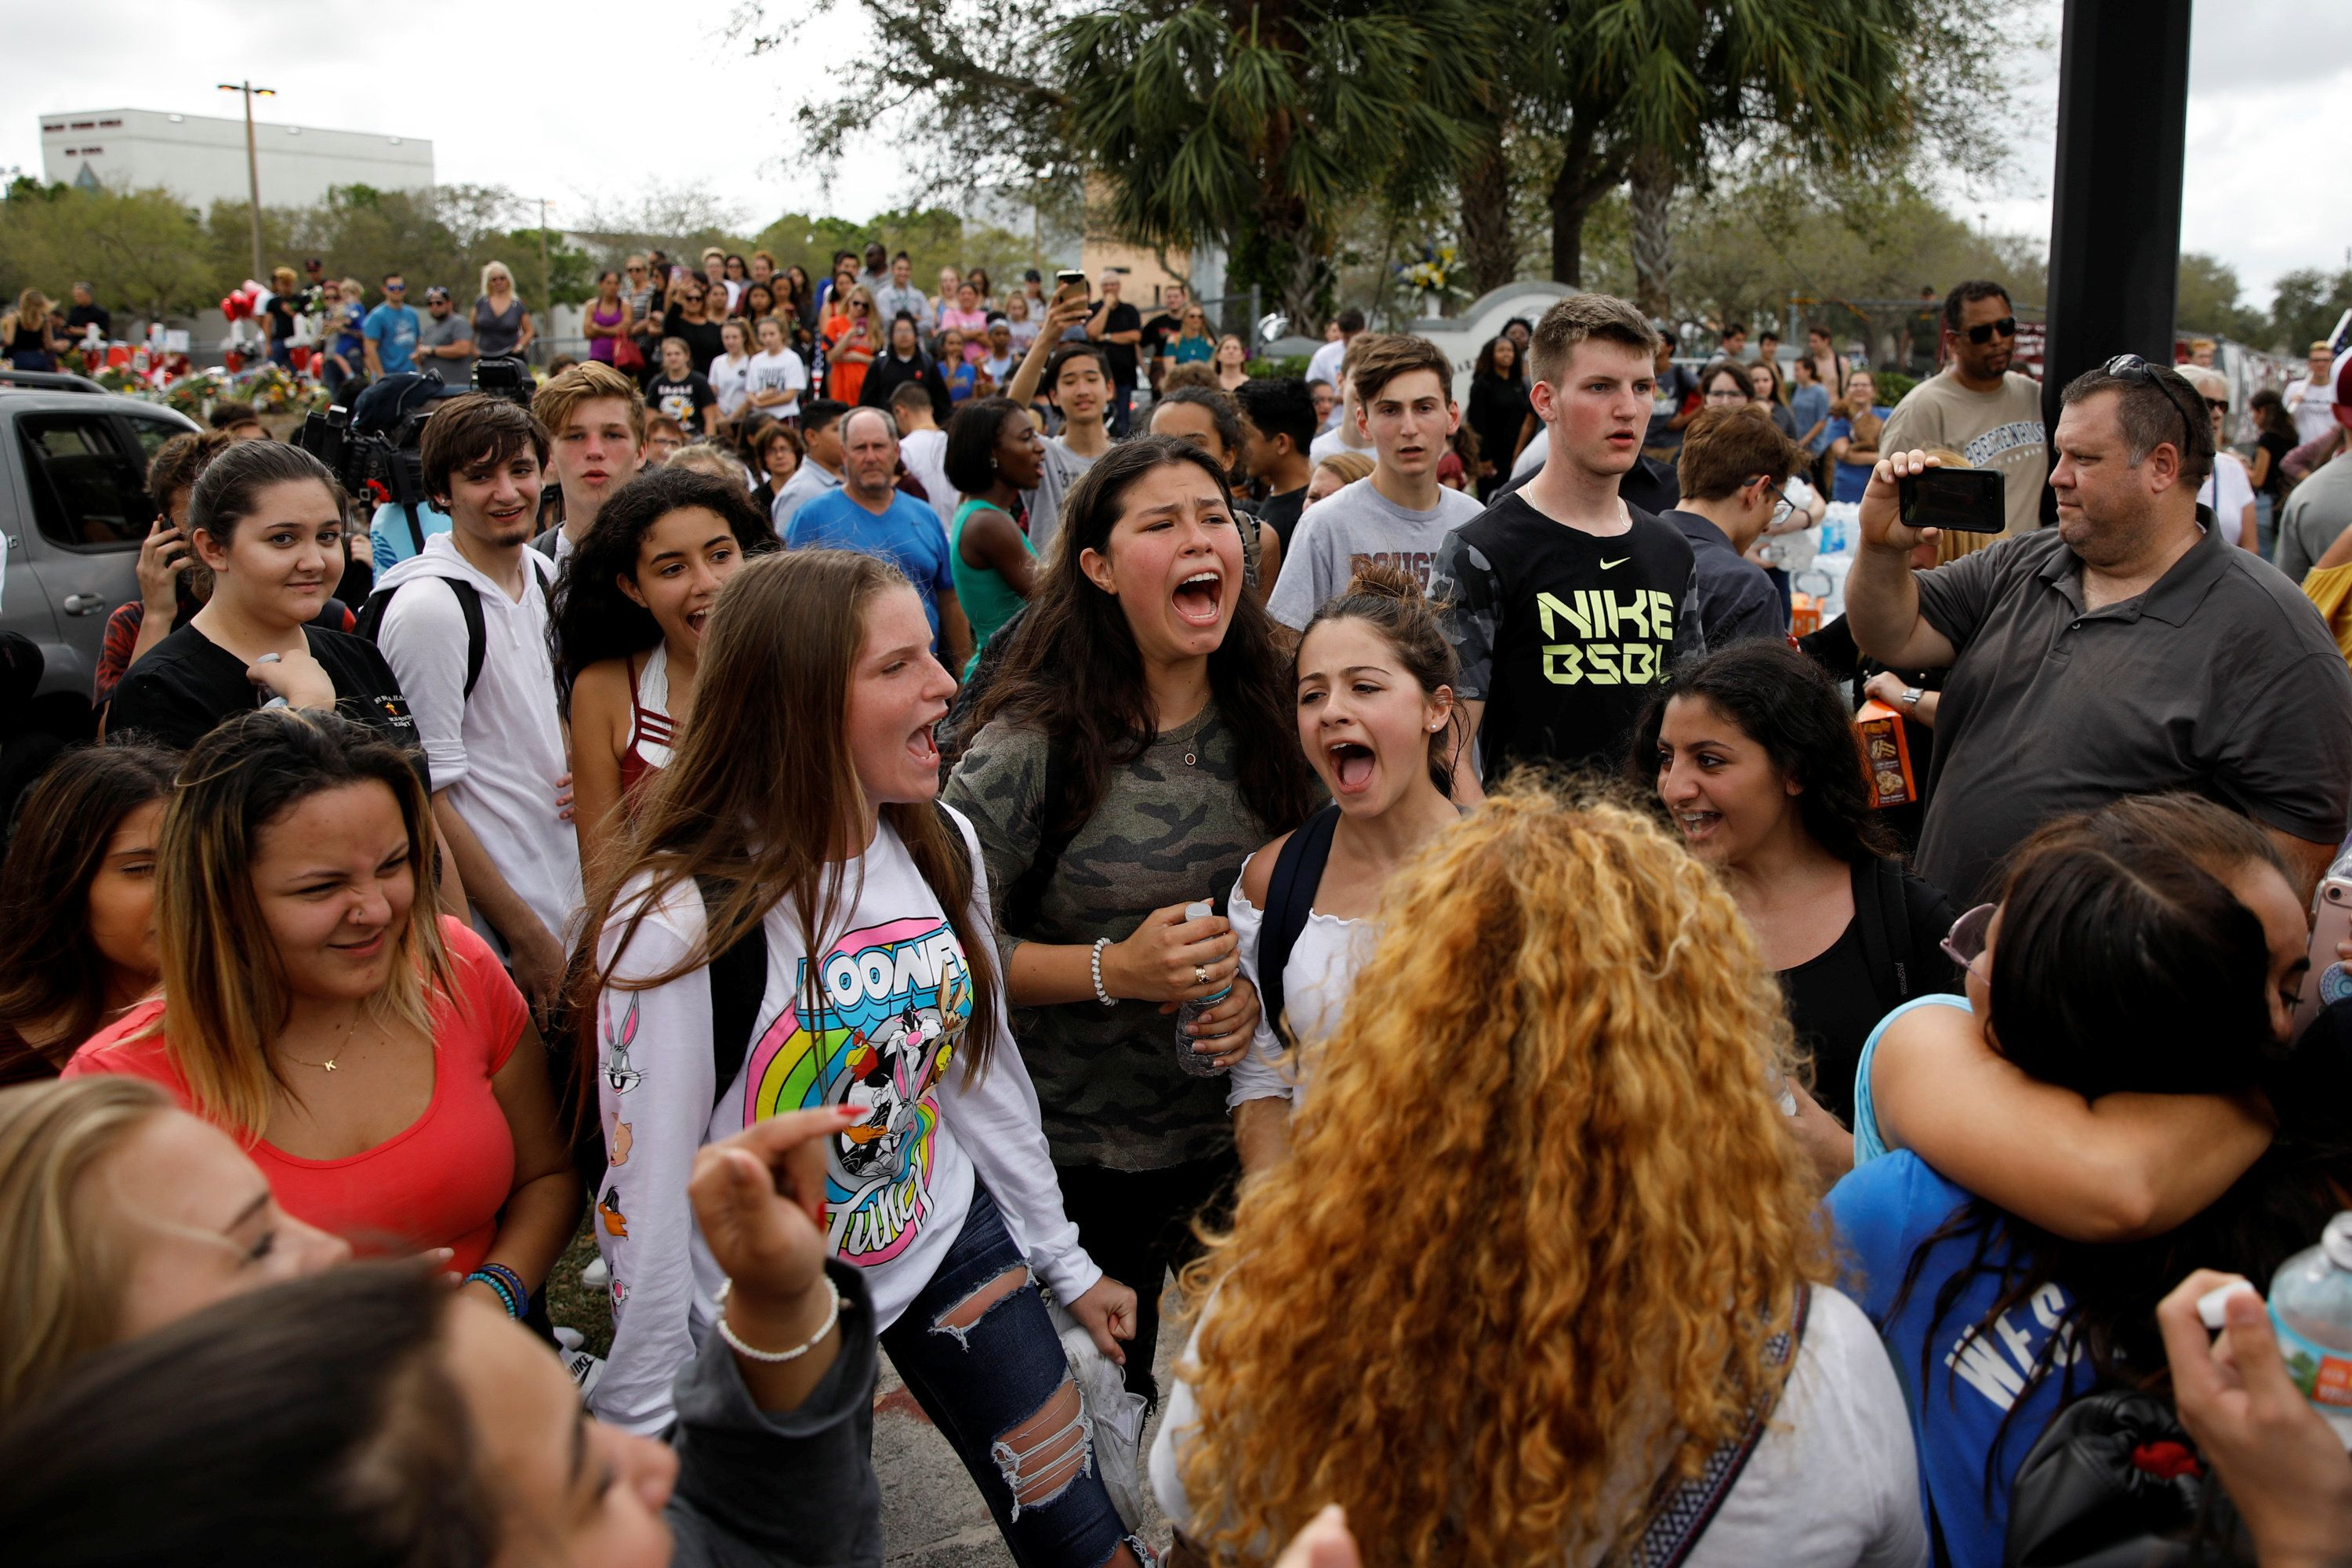 Students shout slogans during a protest to show support for Marjory Stoneman Douglas High School, following a mass shooting in Parkland, Florida, U.S., February 20, 2018. REUTERS/Carlos Garcia Rawlins